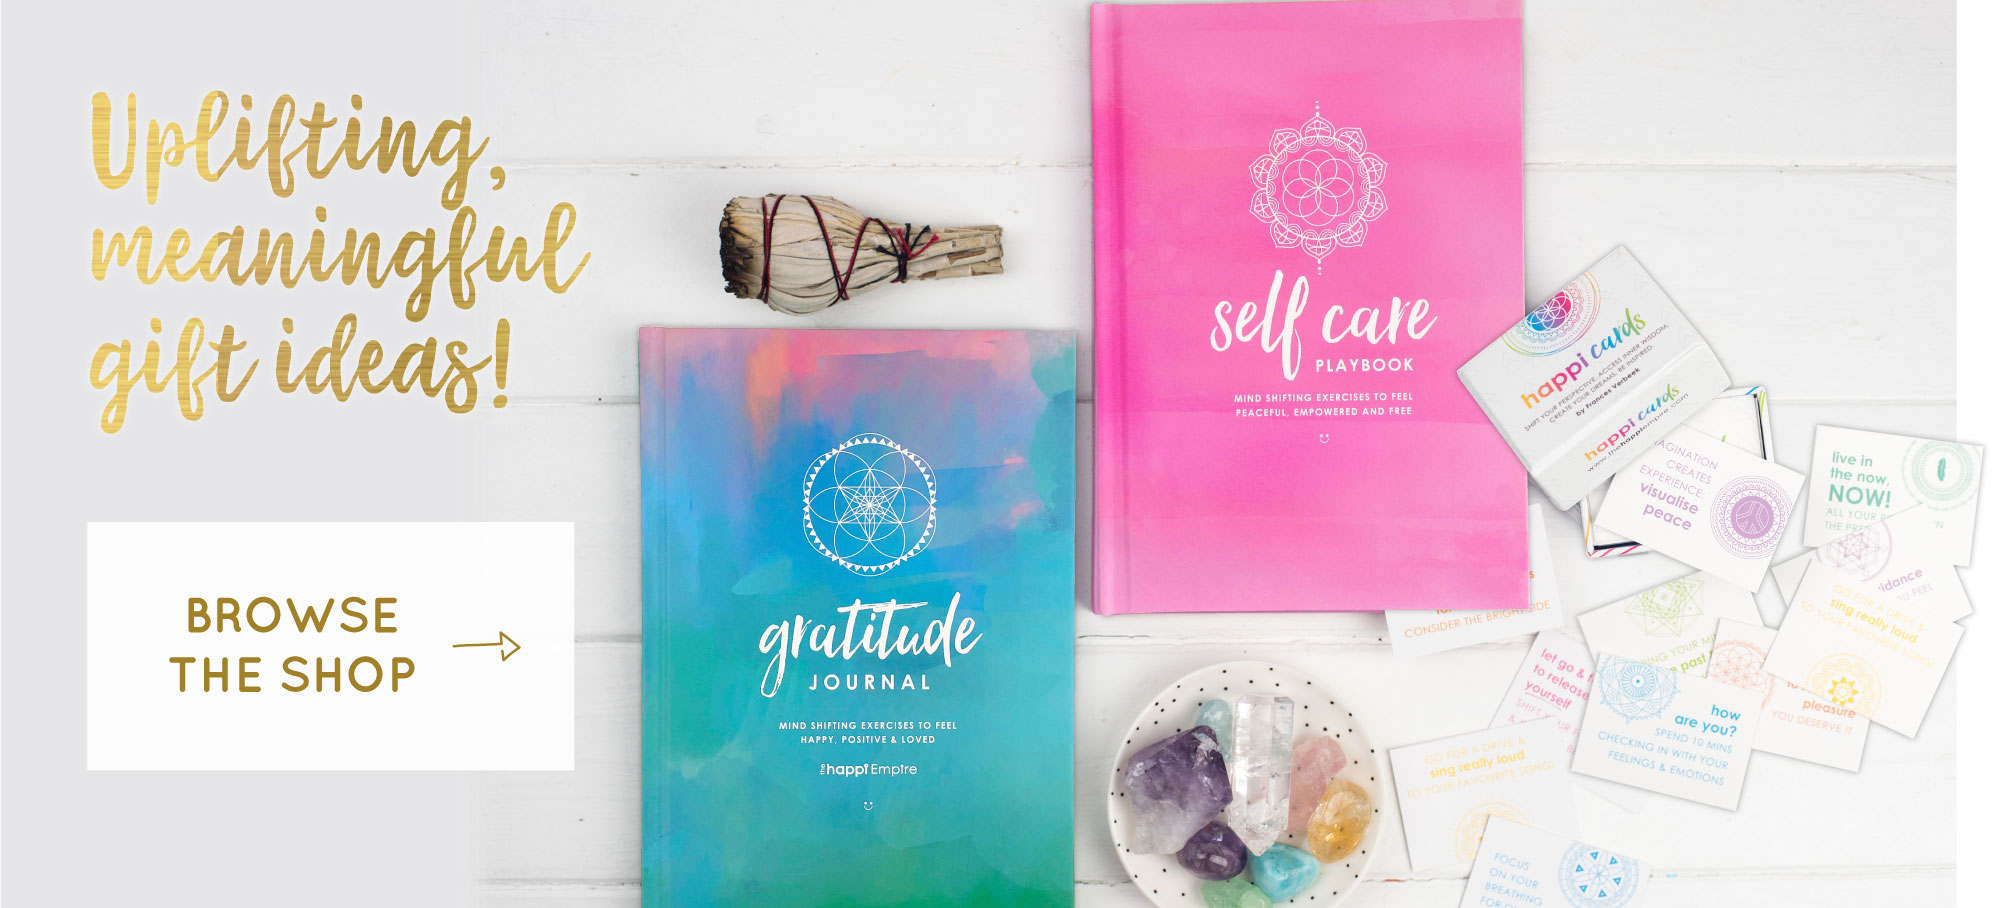 Uplifting Gifts with meaning